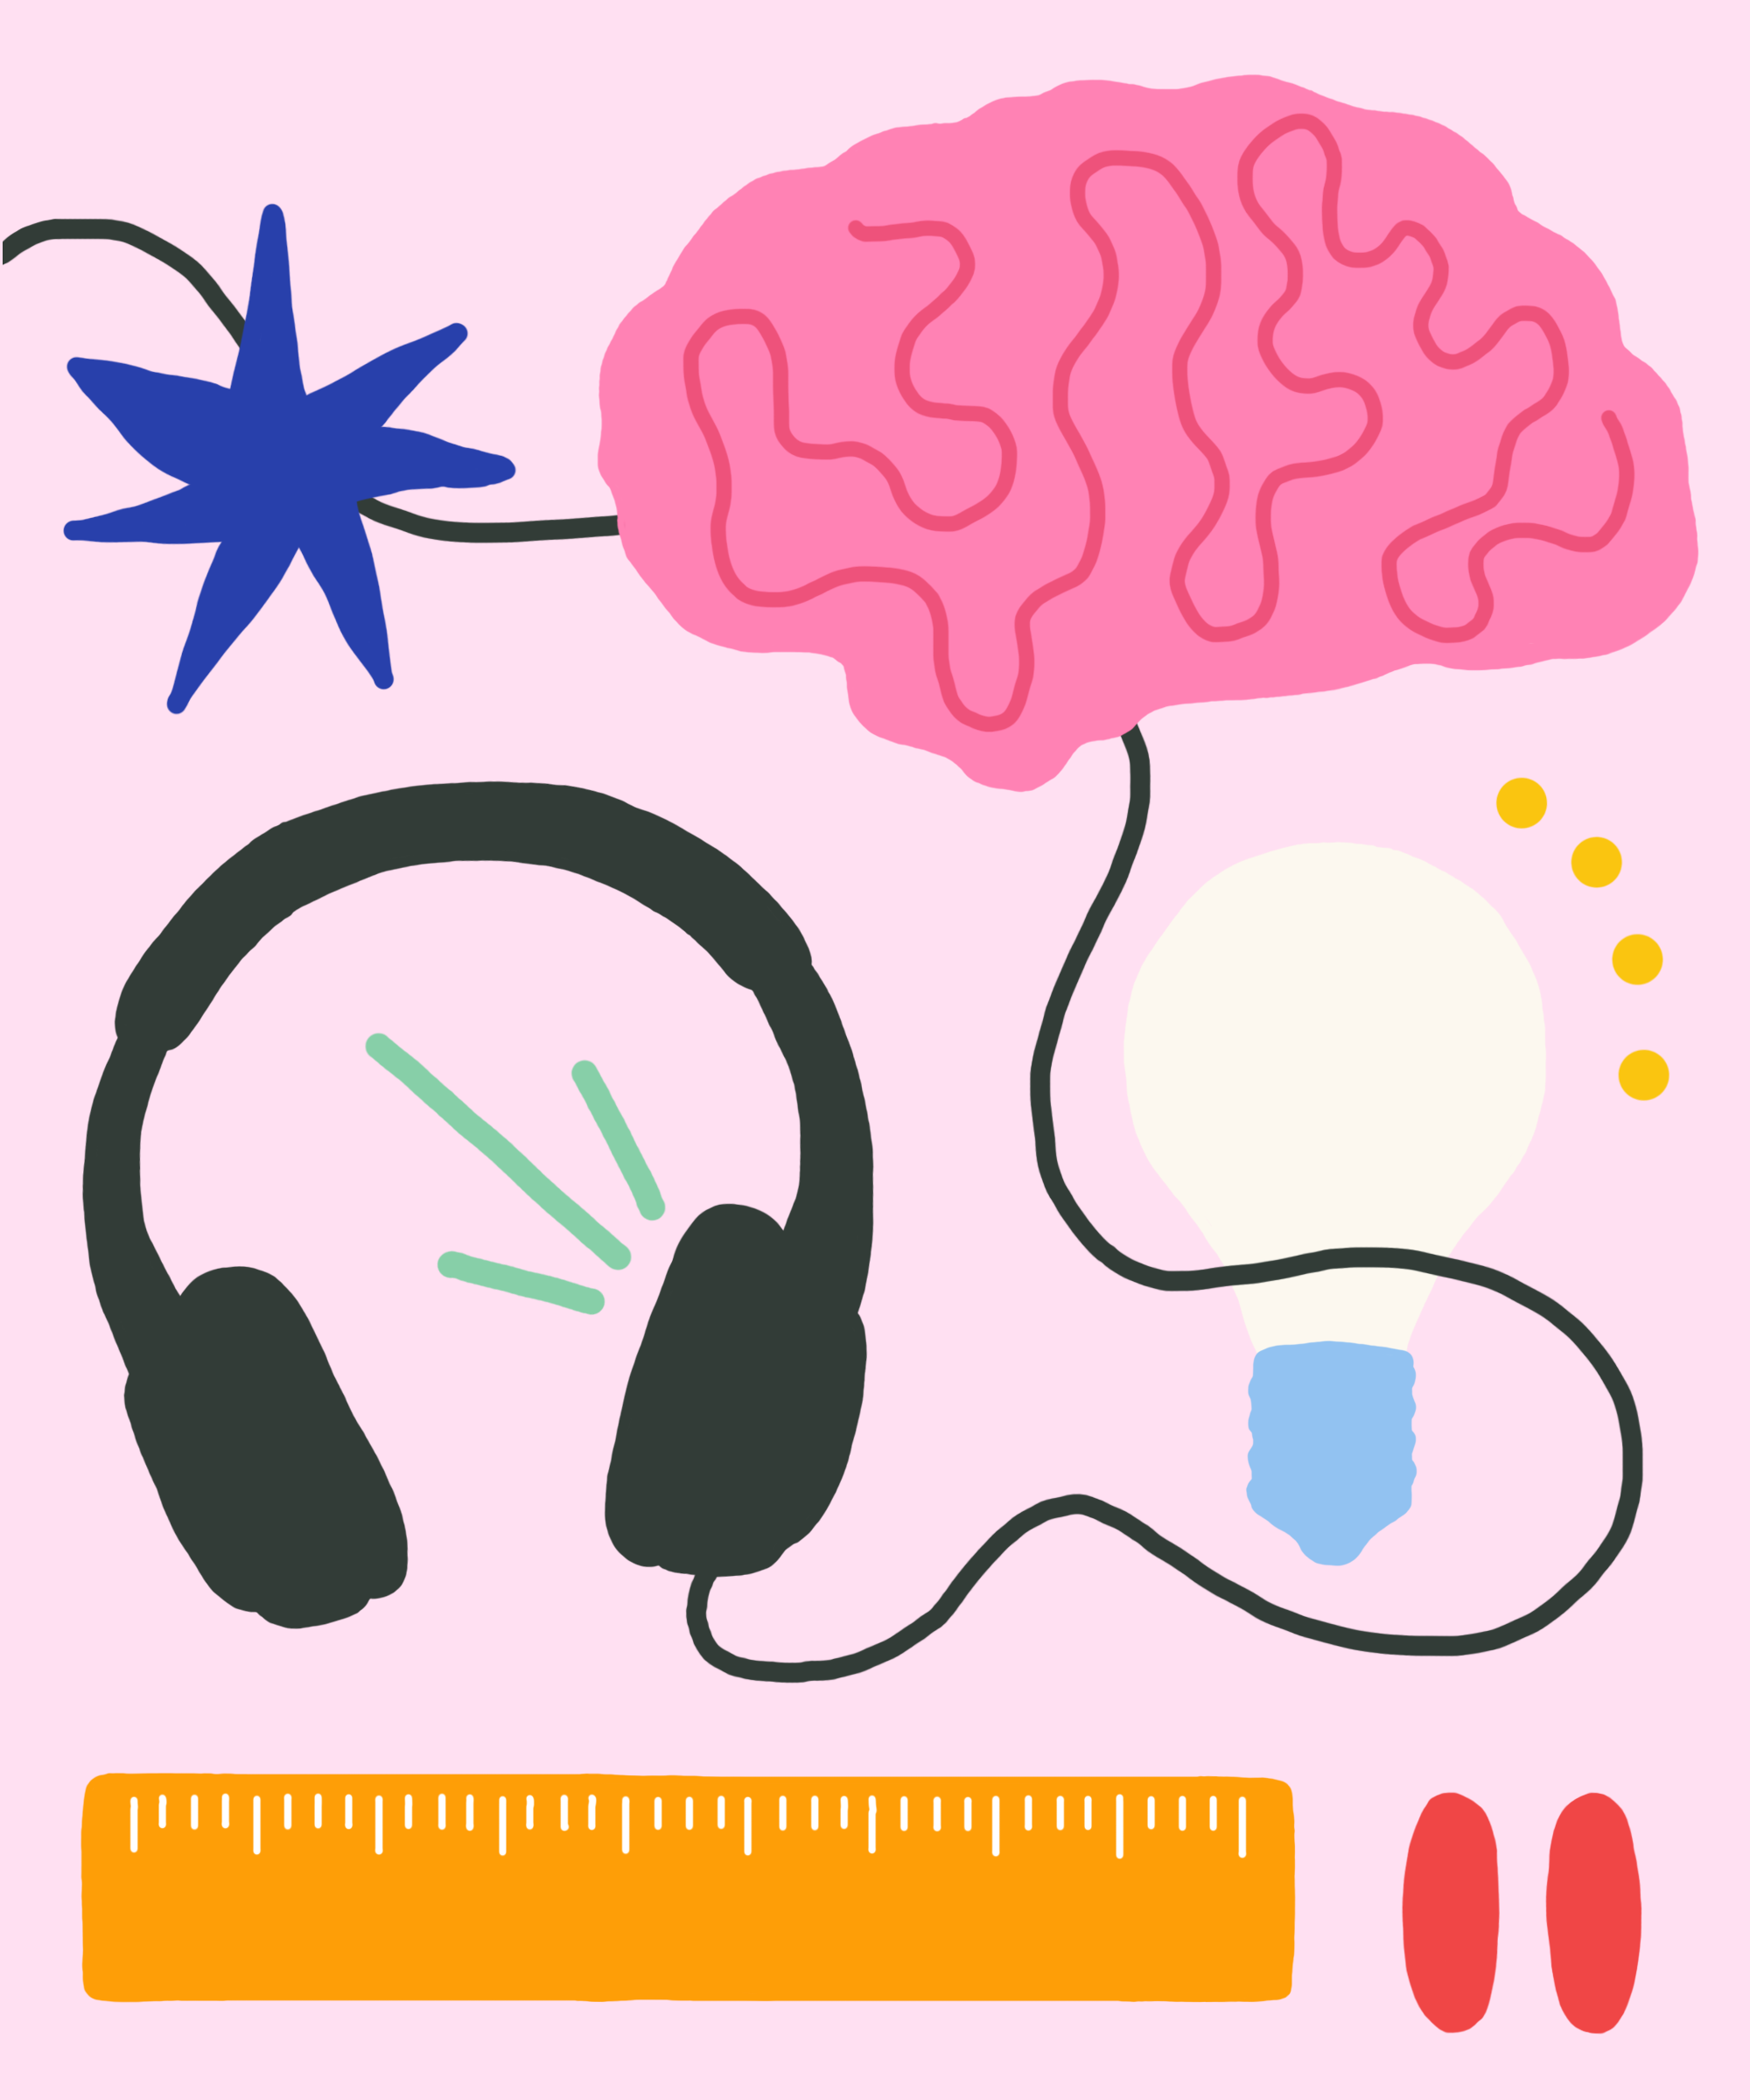 16 Podcasts That Will Make You Smarter